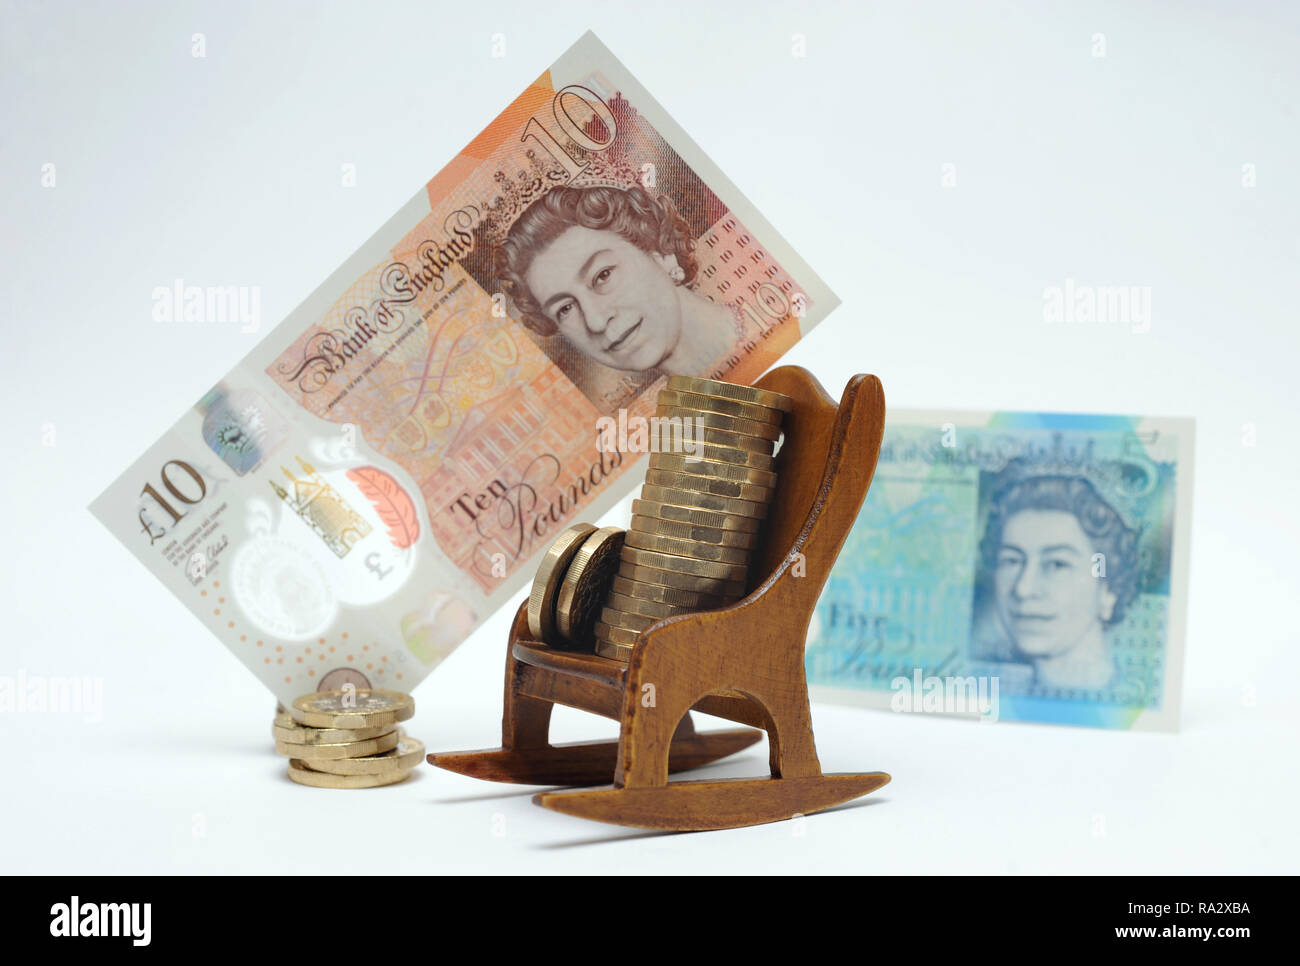 ROCKING CHAIR WITH ONE POUND COINS AND BANKNOTES RE SAVINGS RETIREMENT INVESTMENTS PENSIONERS OLD AGE FINANCES ETC UK - Stock Image